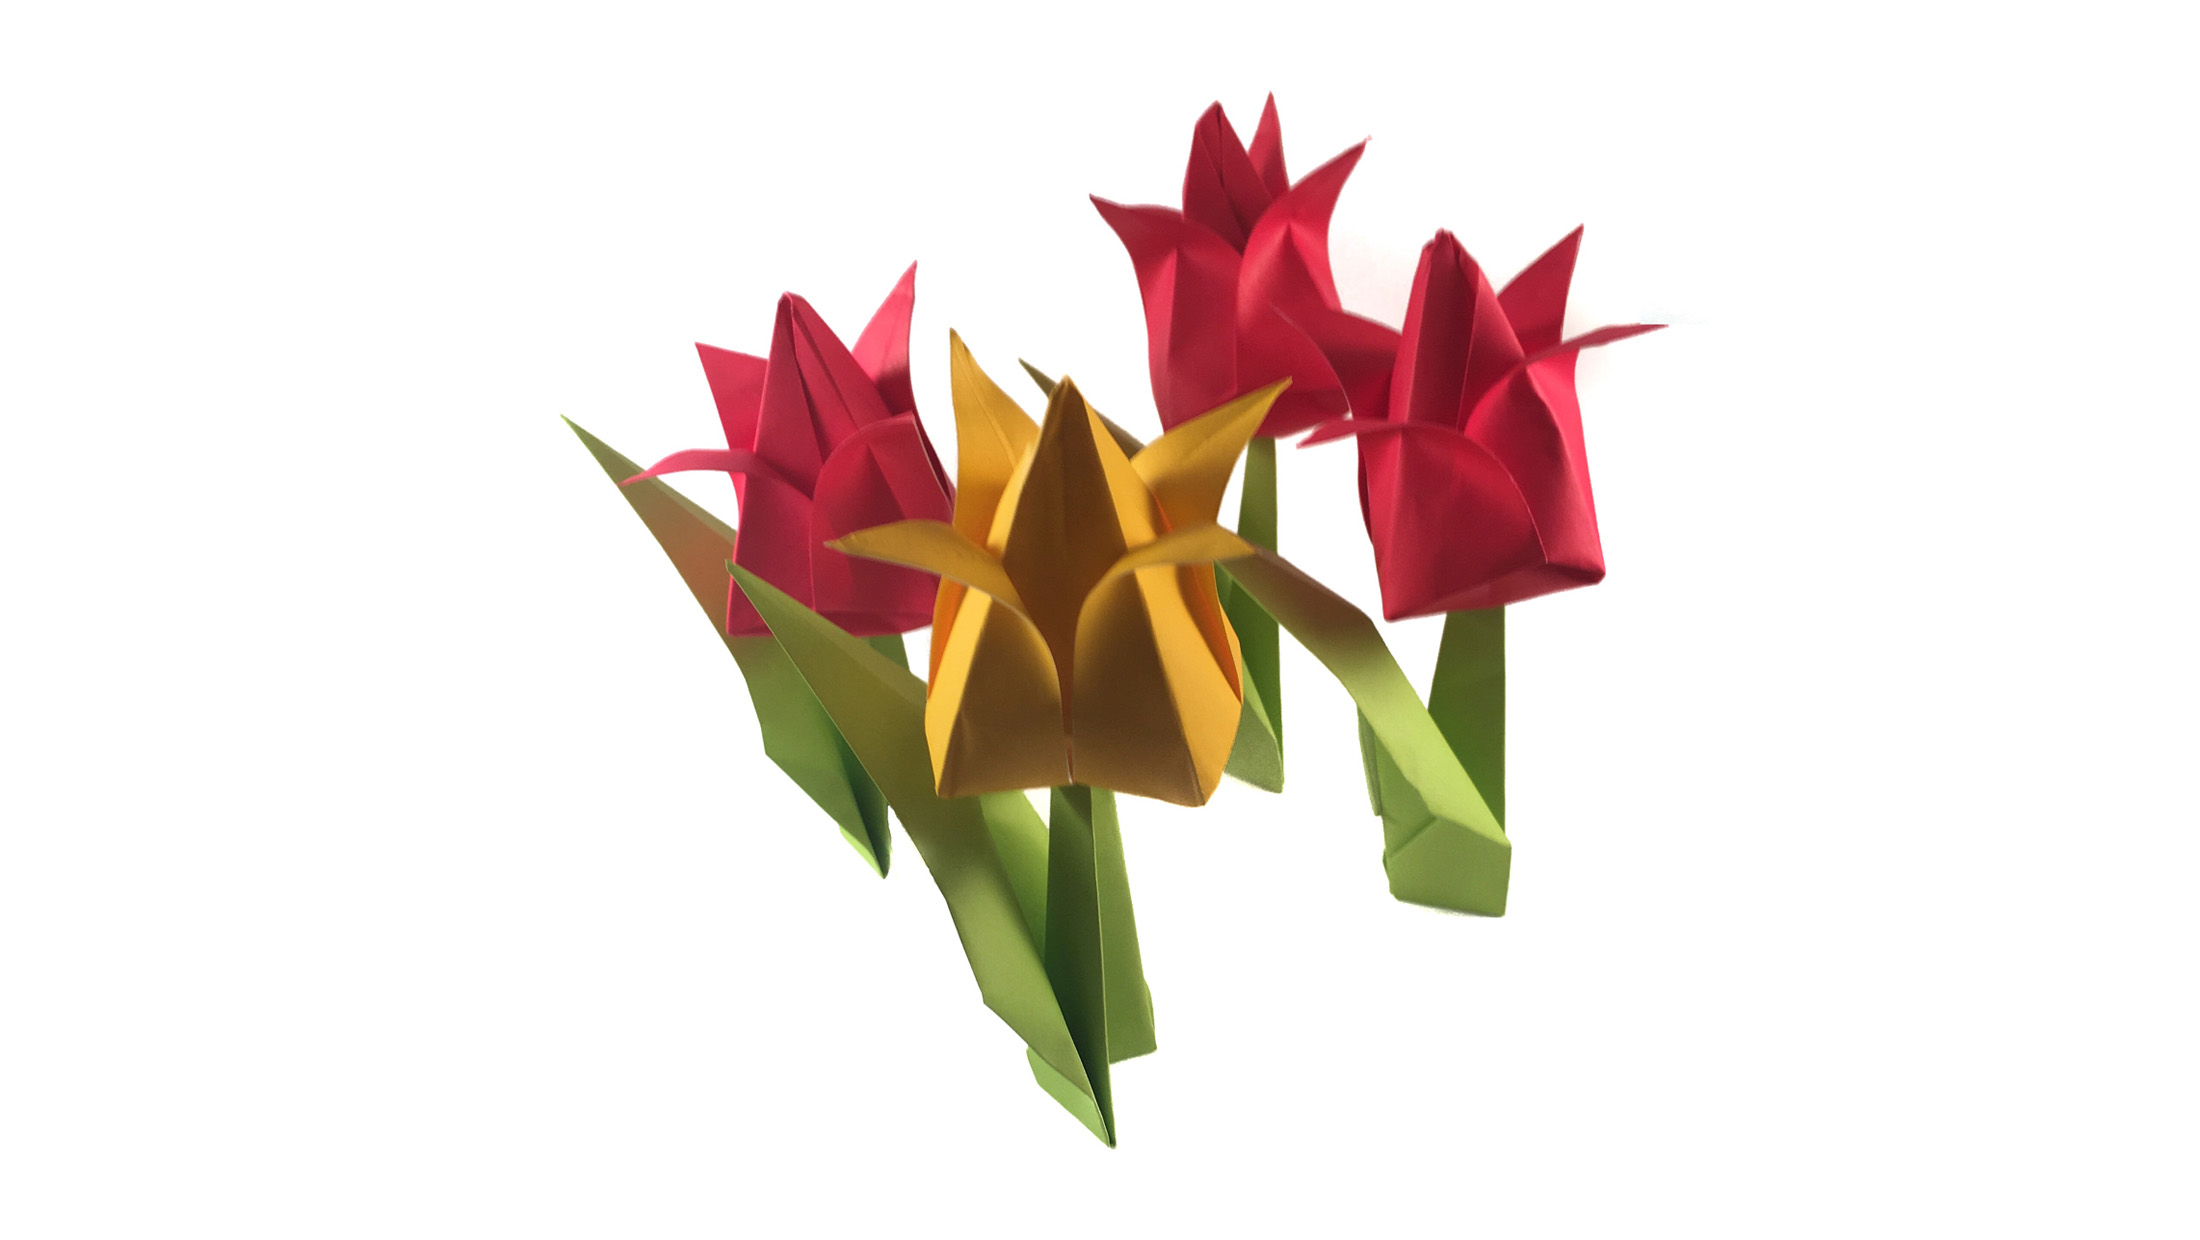 How to Make an Origami Tulip Step by Step Instructions | Free ... | 1240x2200